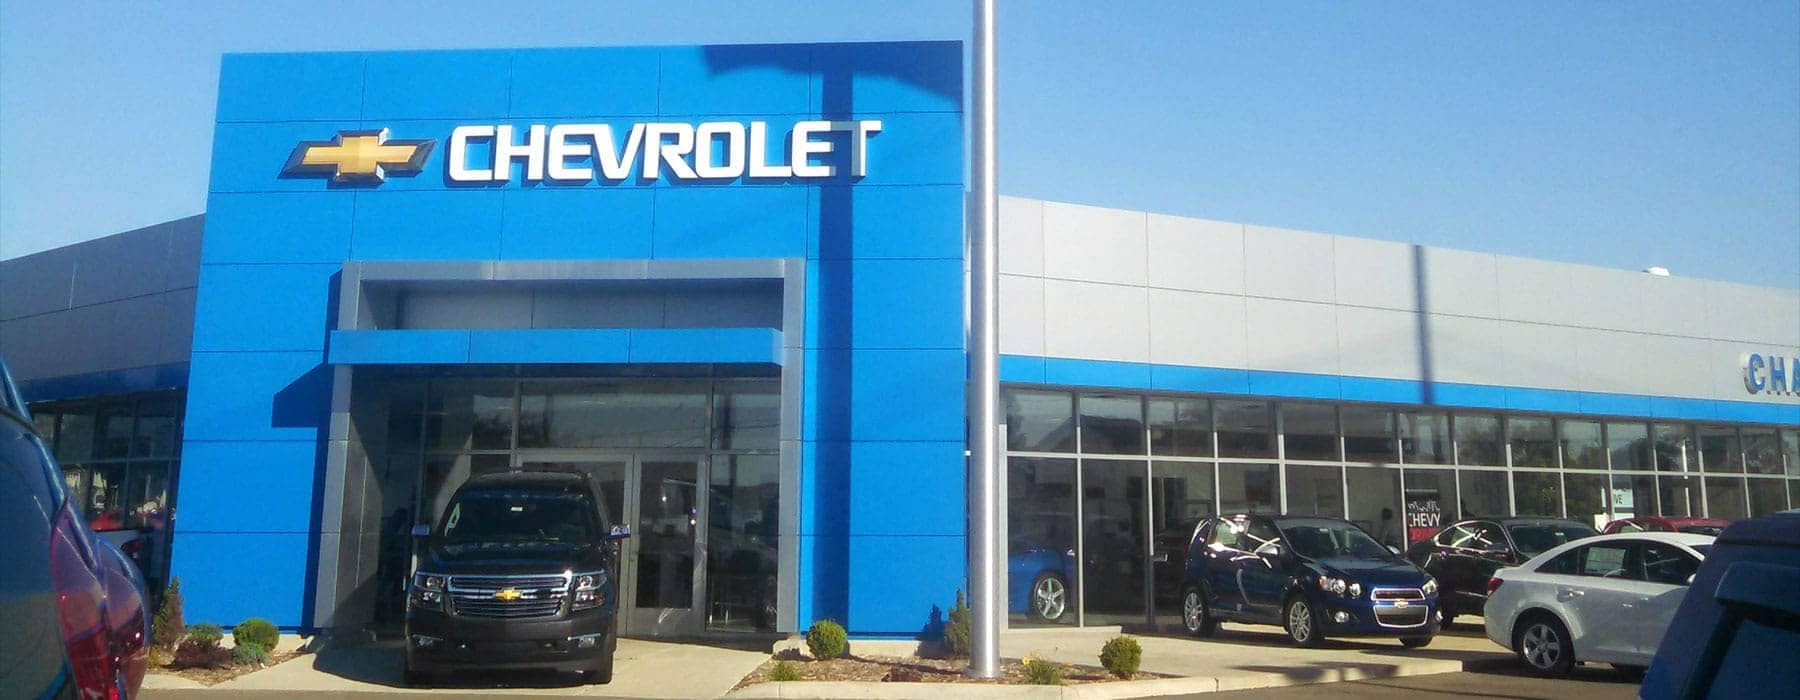 Champion Chevrolet of Fowlerville Exterior Dealership